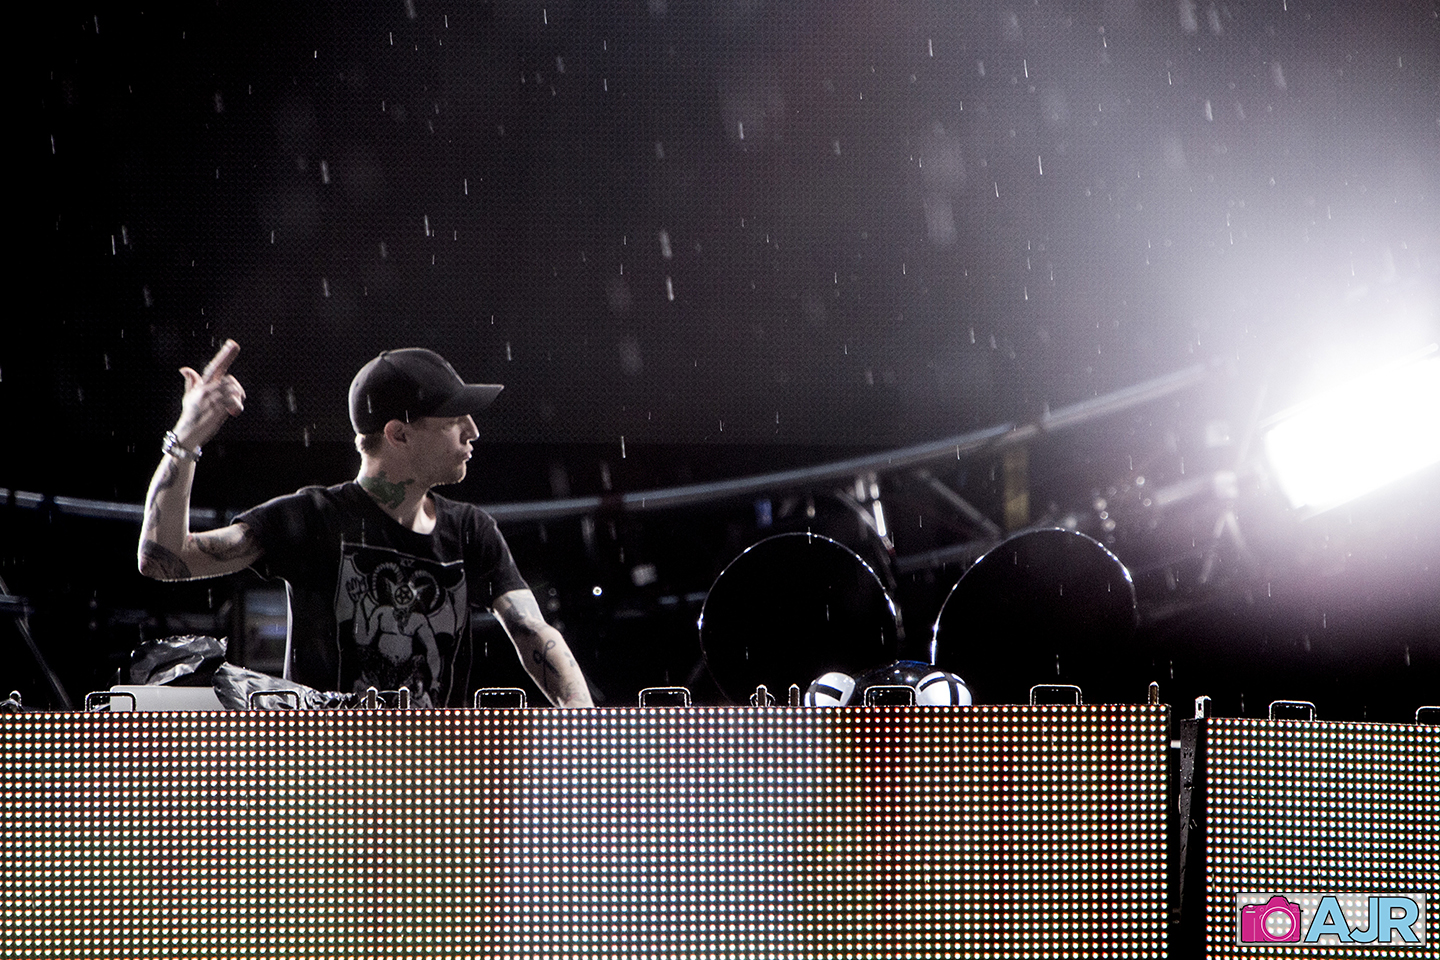 Deadmau5-performs-in-the-rain-on-Main-Stage-at-Ultra-Miami-on-3_29_14030